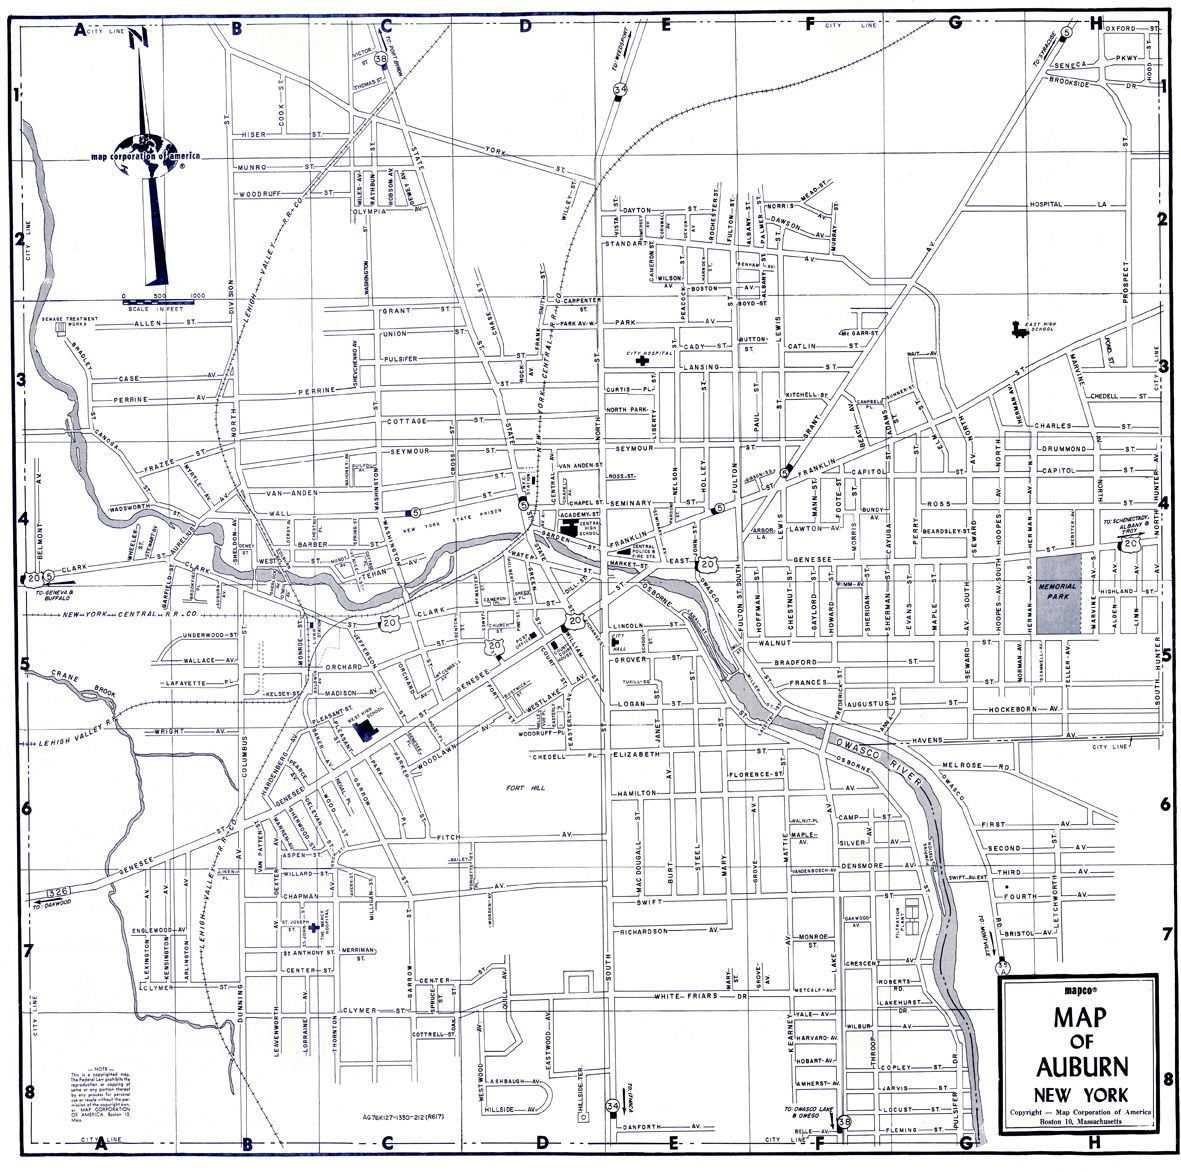 Before urban renewal map